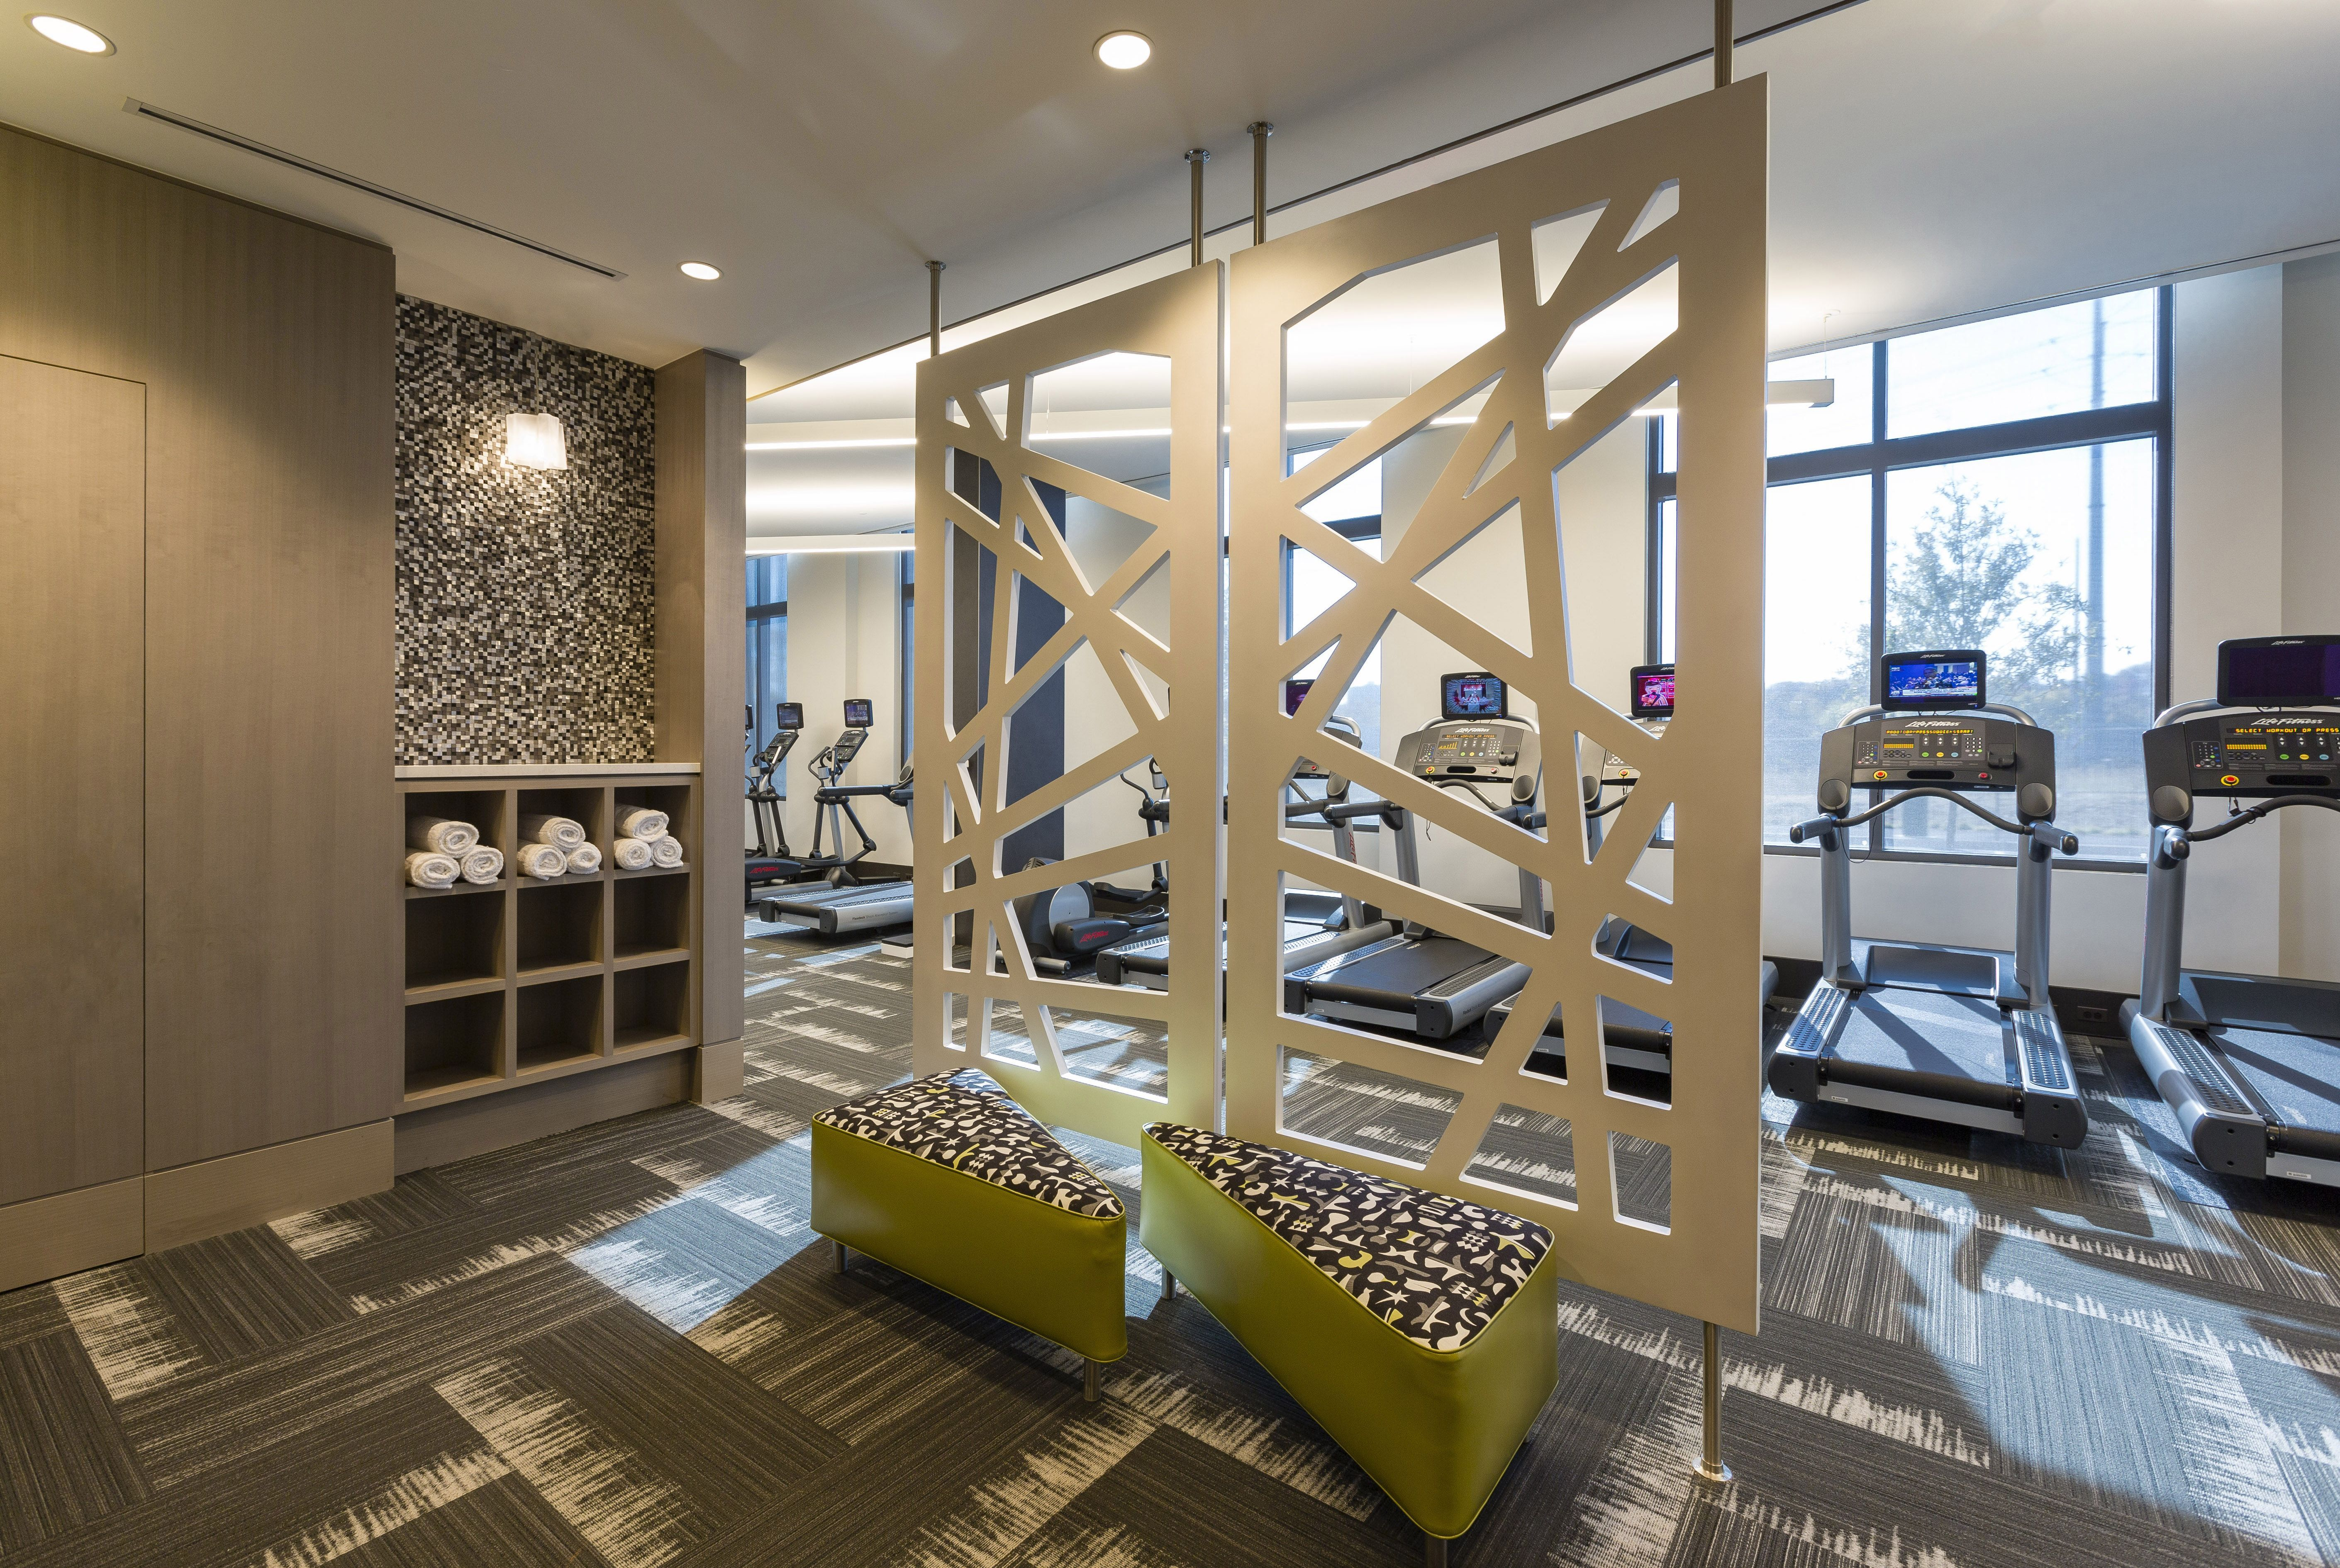 A #fitness center that continues with the #earthy and #refreshing #vibe of this high rise in Alexand...